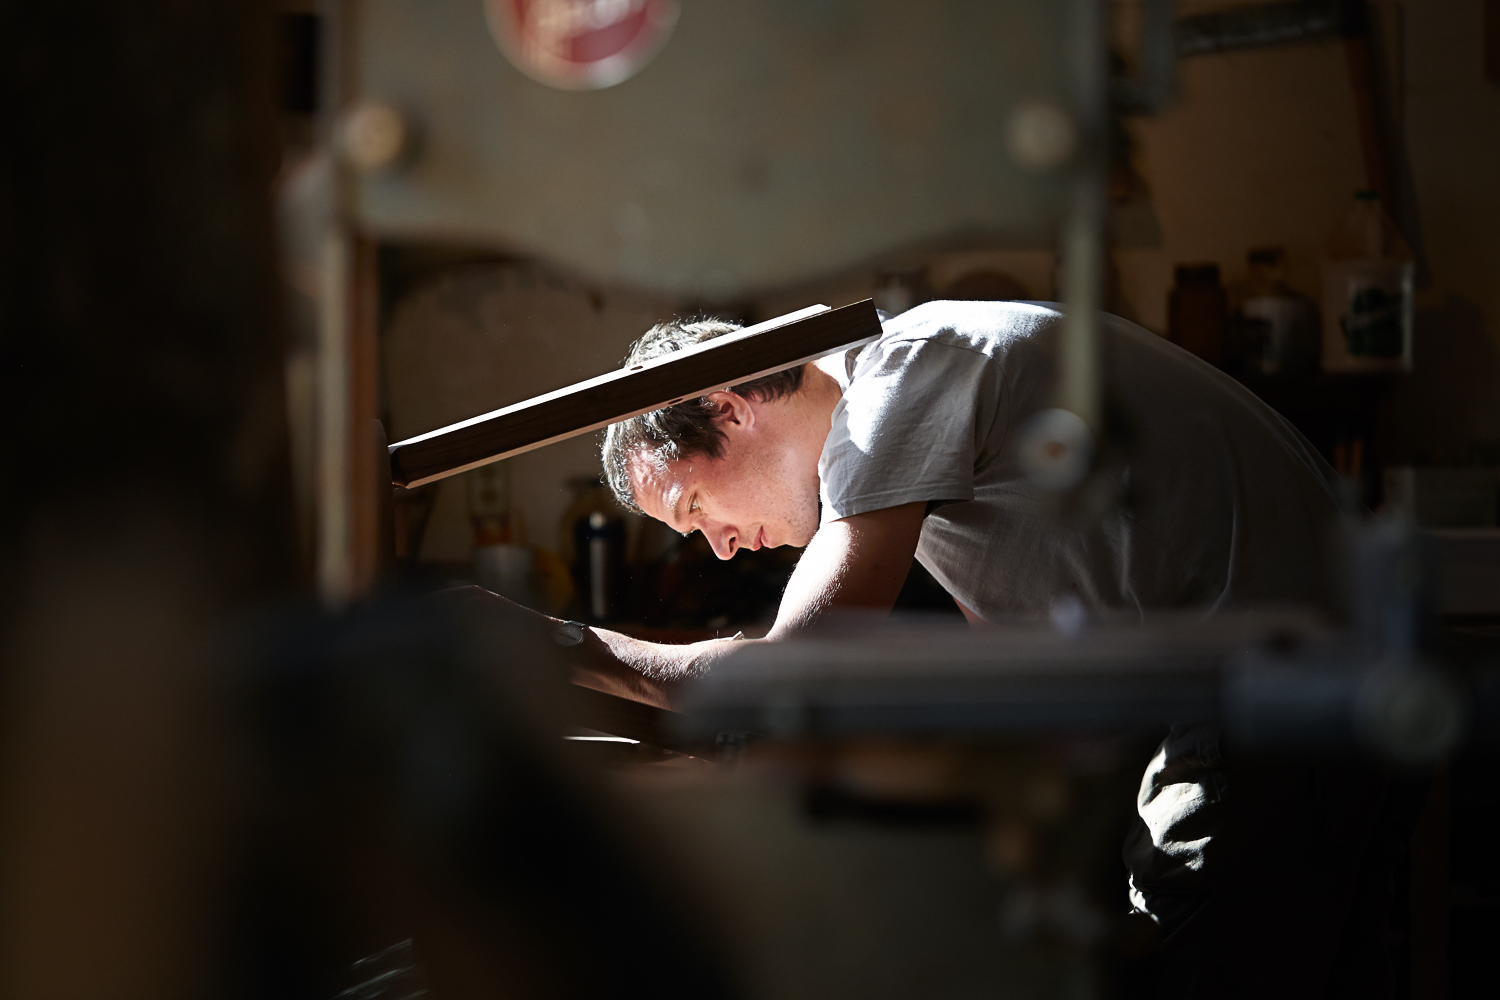 carpenter working in his shop